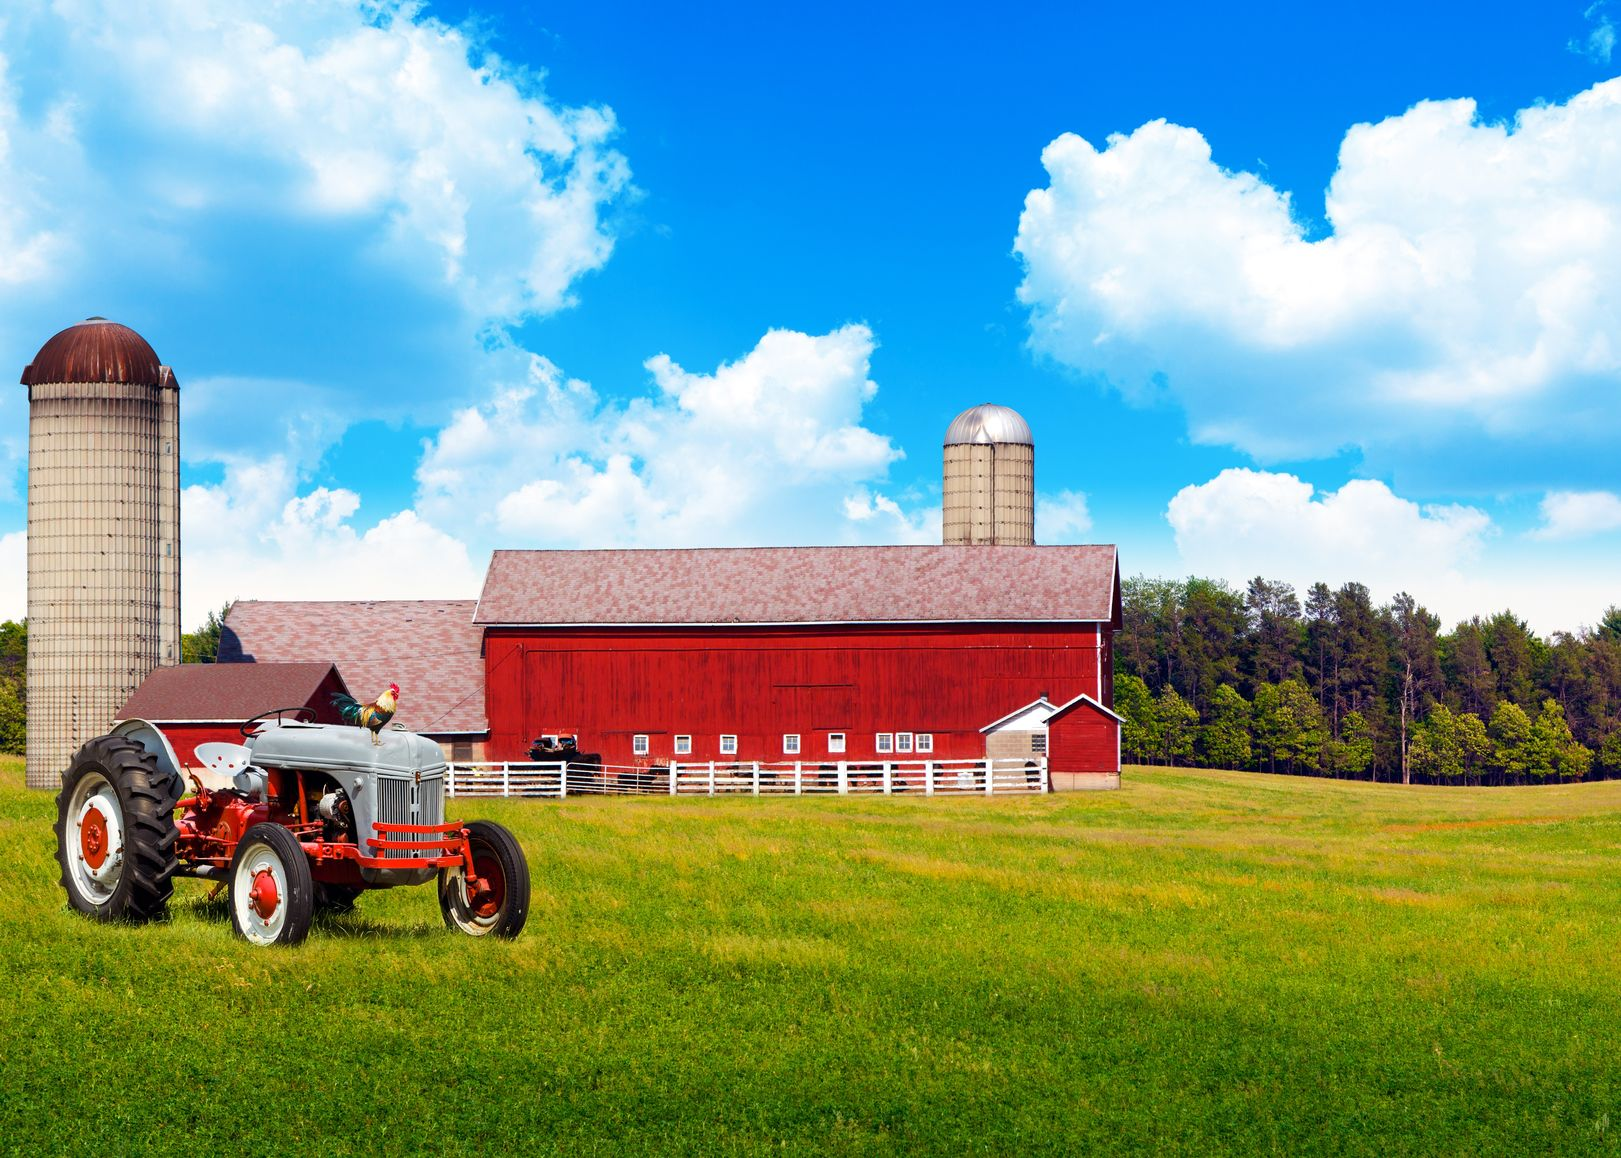 Miami Farm & Ranch Insurance